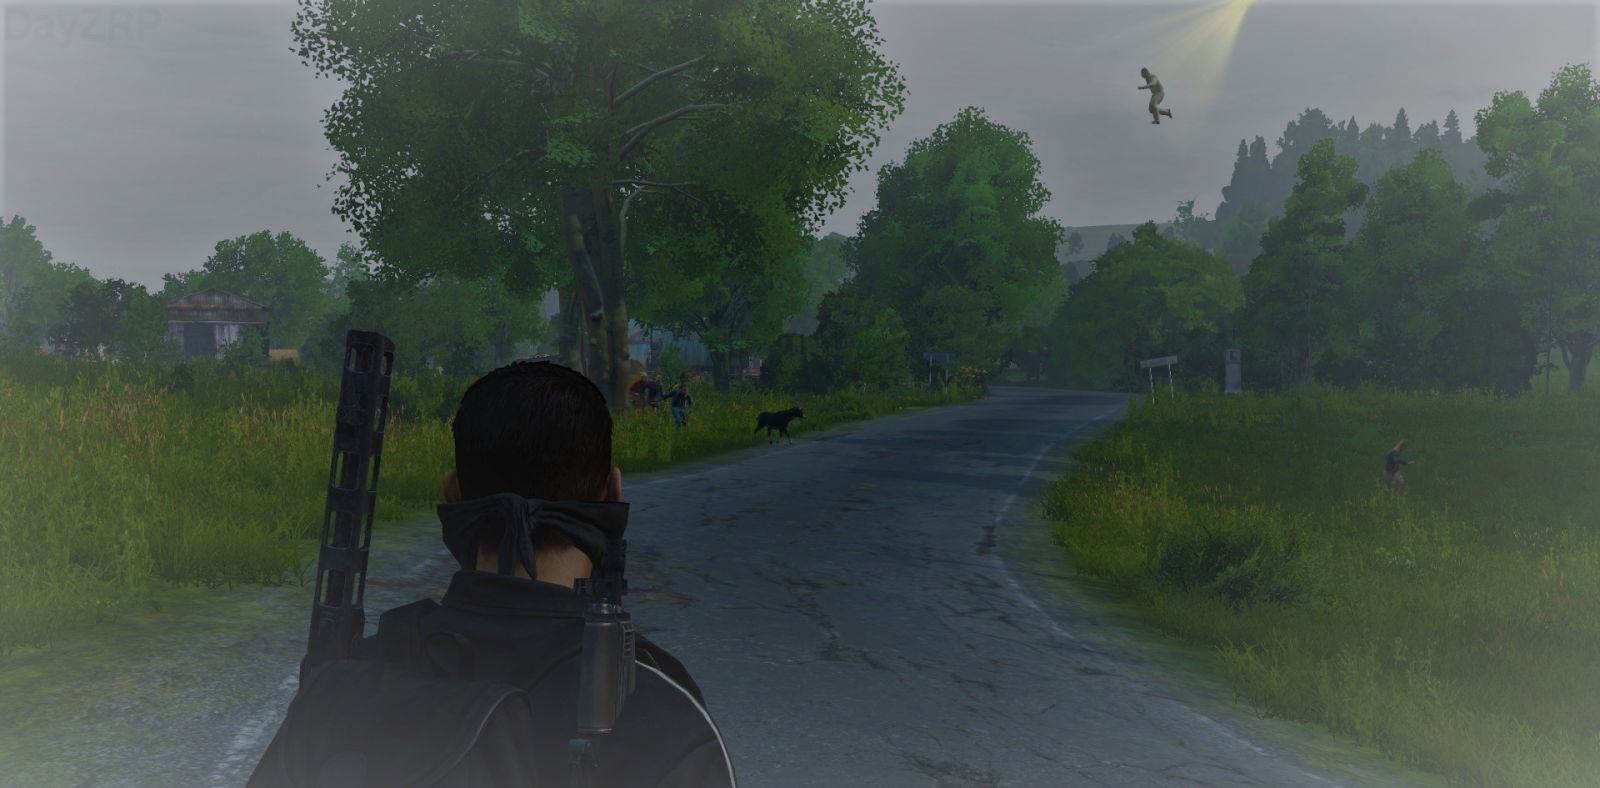 DayZ Zombie Jesus coming down for his annual goat sacrifice xD